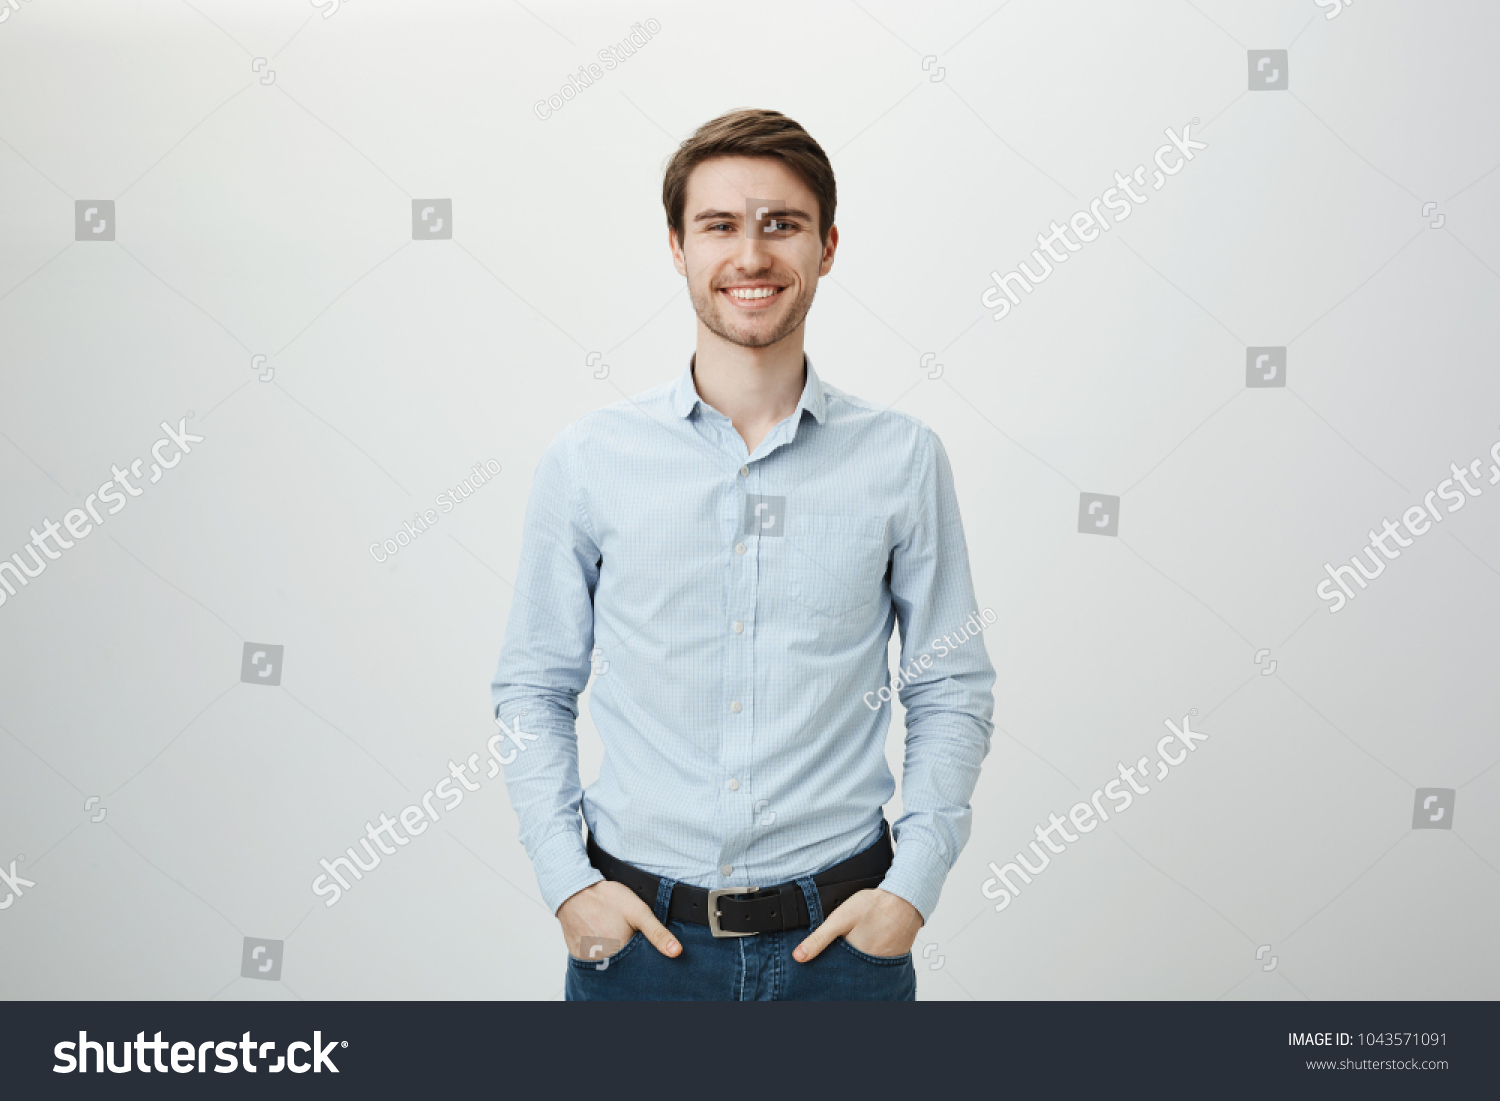 Confidence and business concept. Portrait of charming successful young entrepreneur in blue-collar shirt, smiling broadly with self-assured expression while holding hands in pockets over gray wall #1043571091